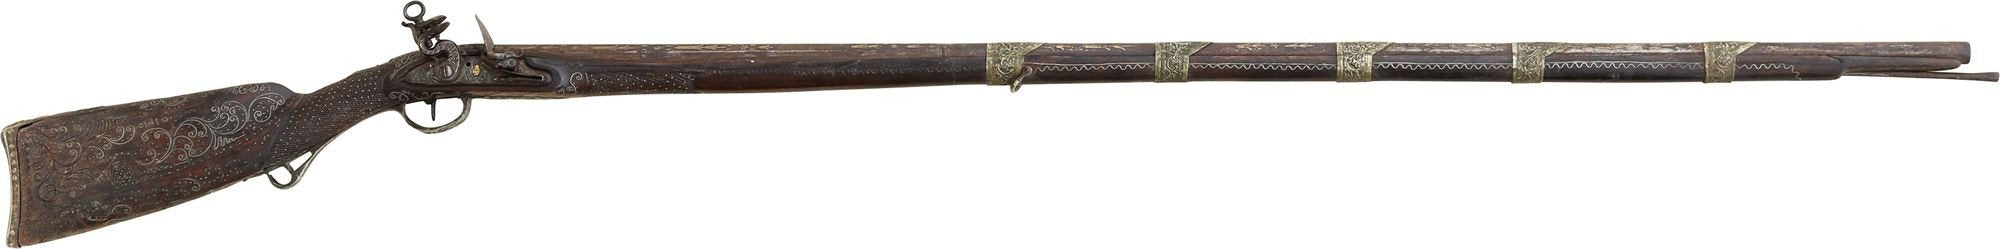 Spanish Flintlock Musket C.1750-1800 - Product